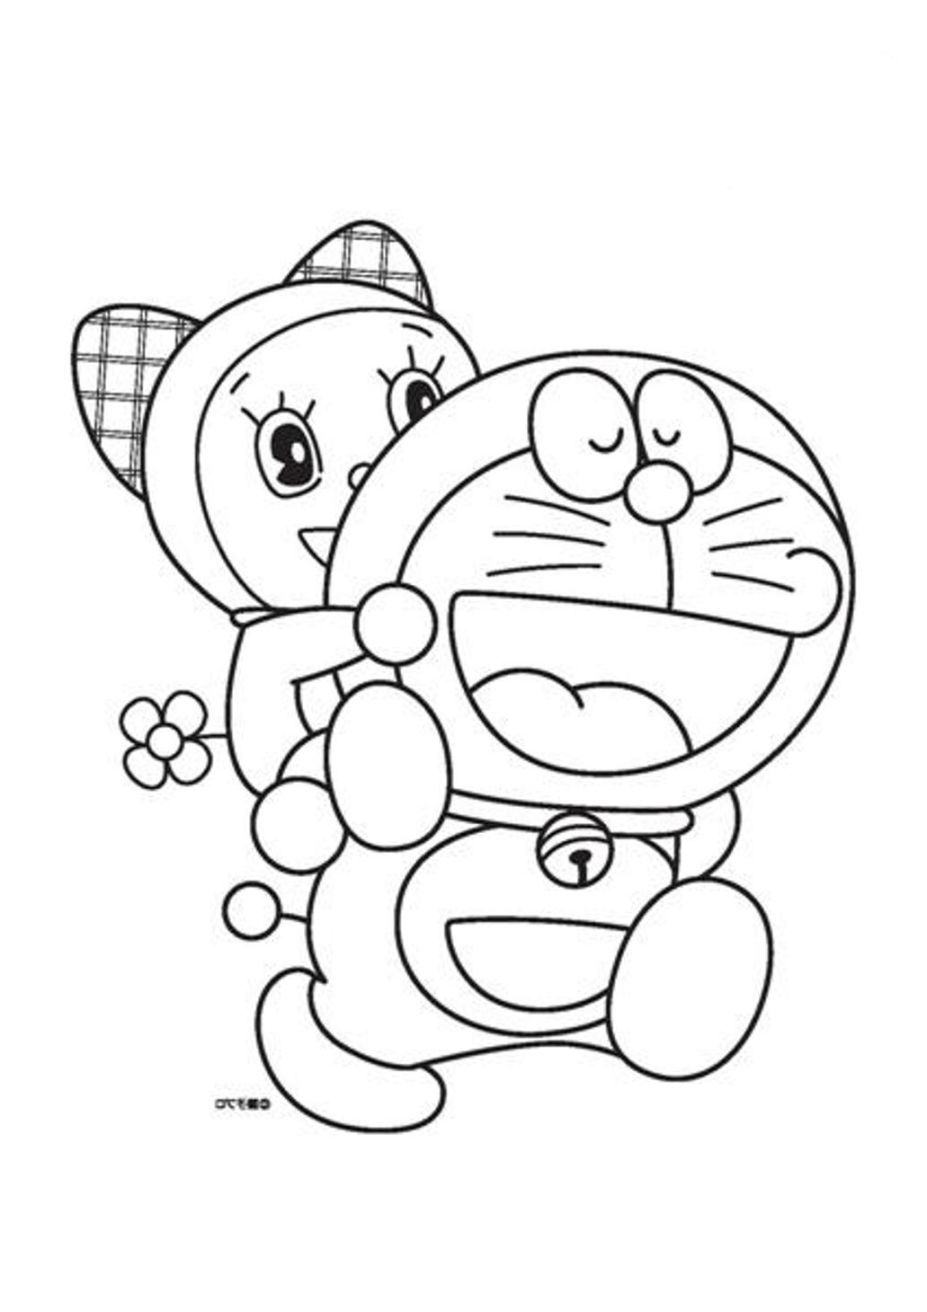 927x1312 Doremon Drawing Coloring Pages Coloring Pages Kids